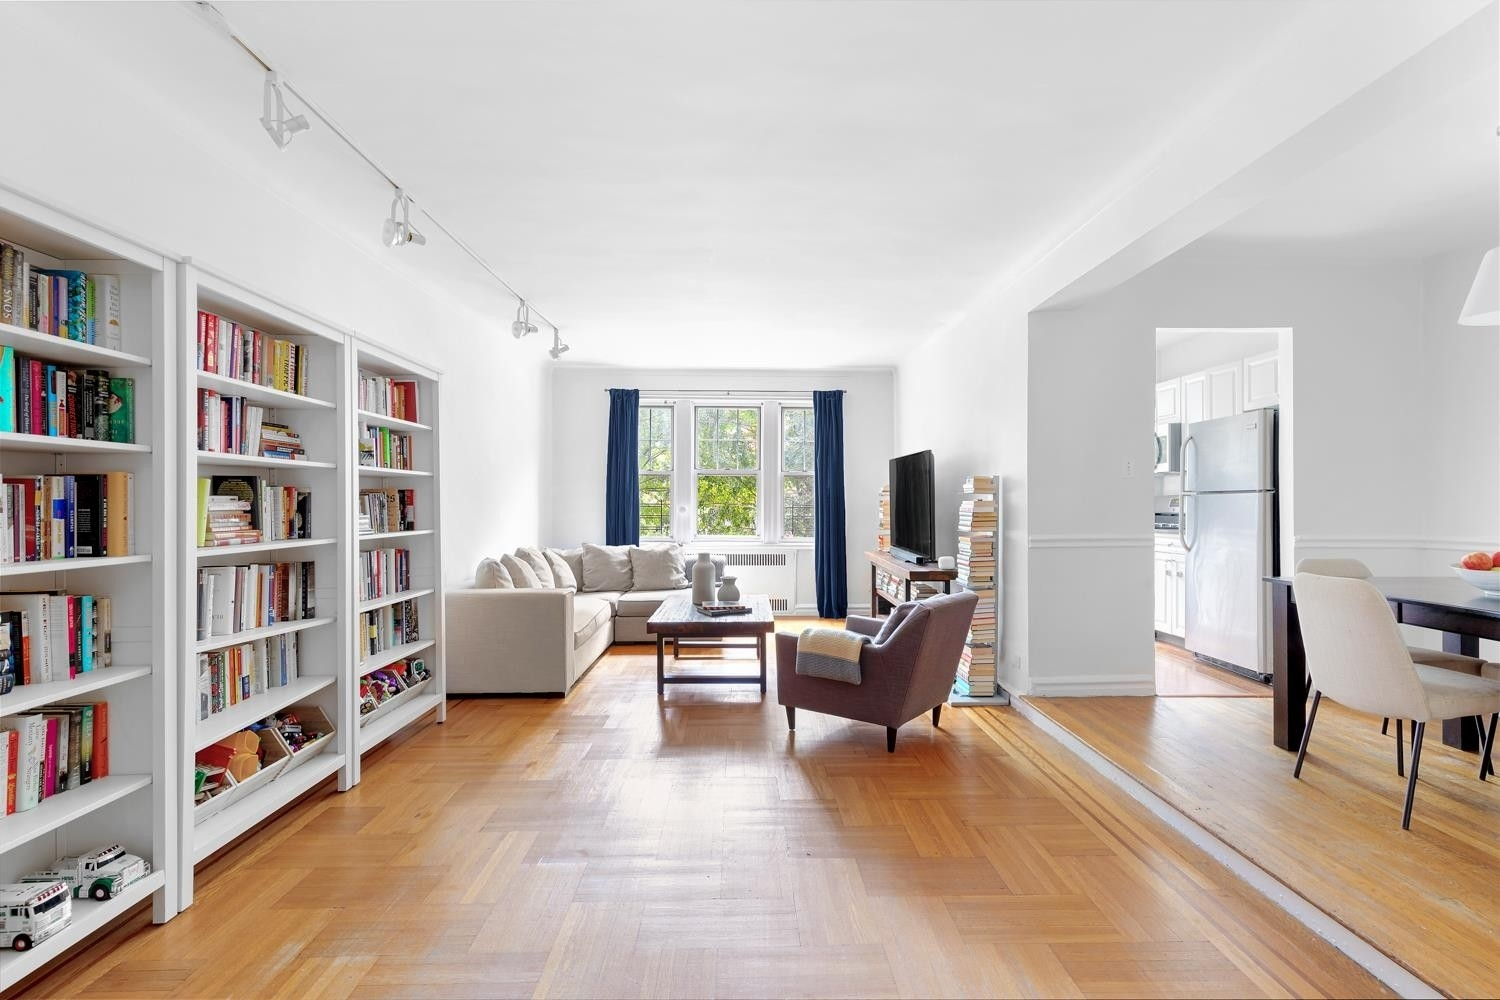 Co-op Properties for Sale at 601 East 19th St, 2T Ditmas Park, Brooklyn, NY 11226